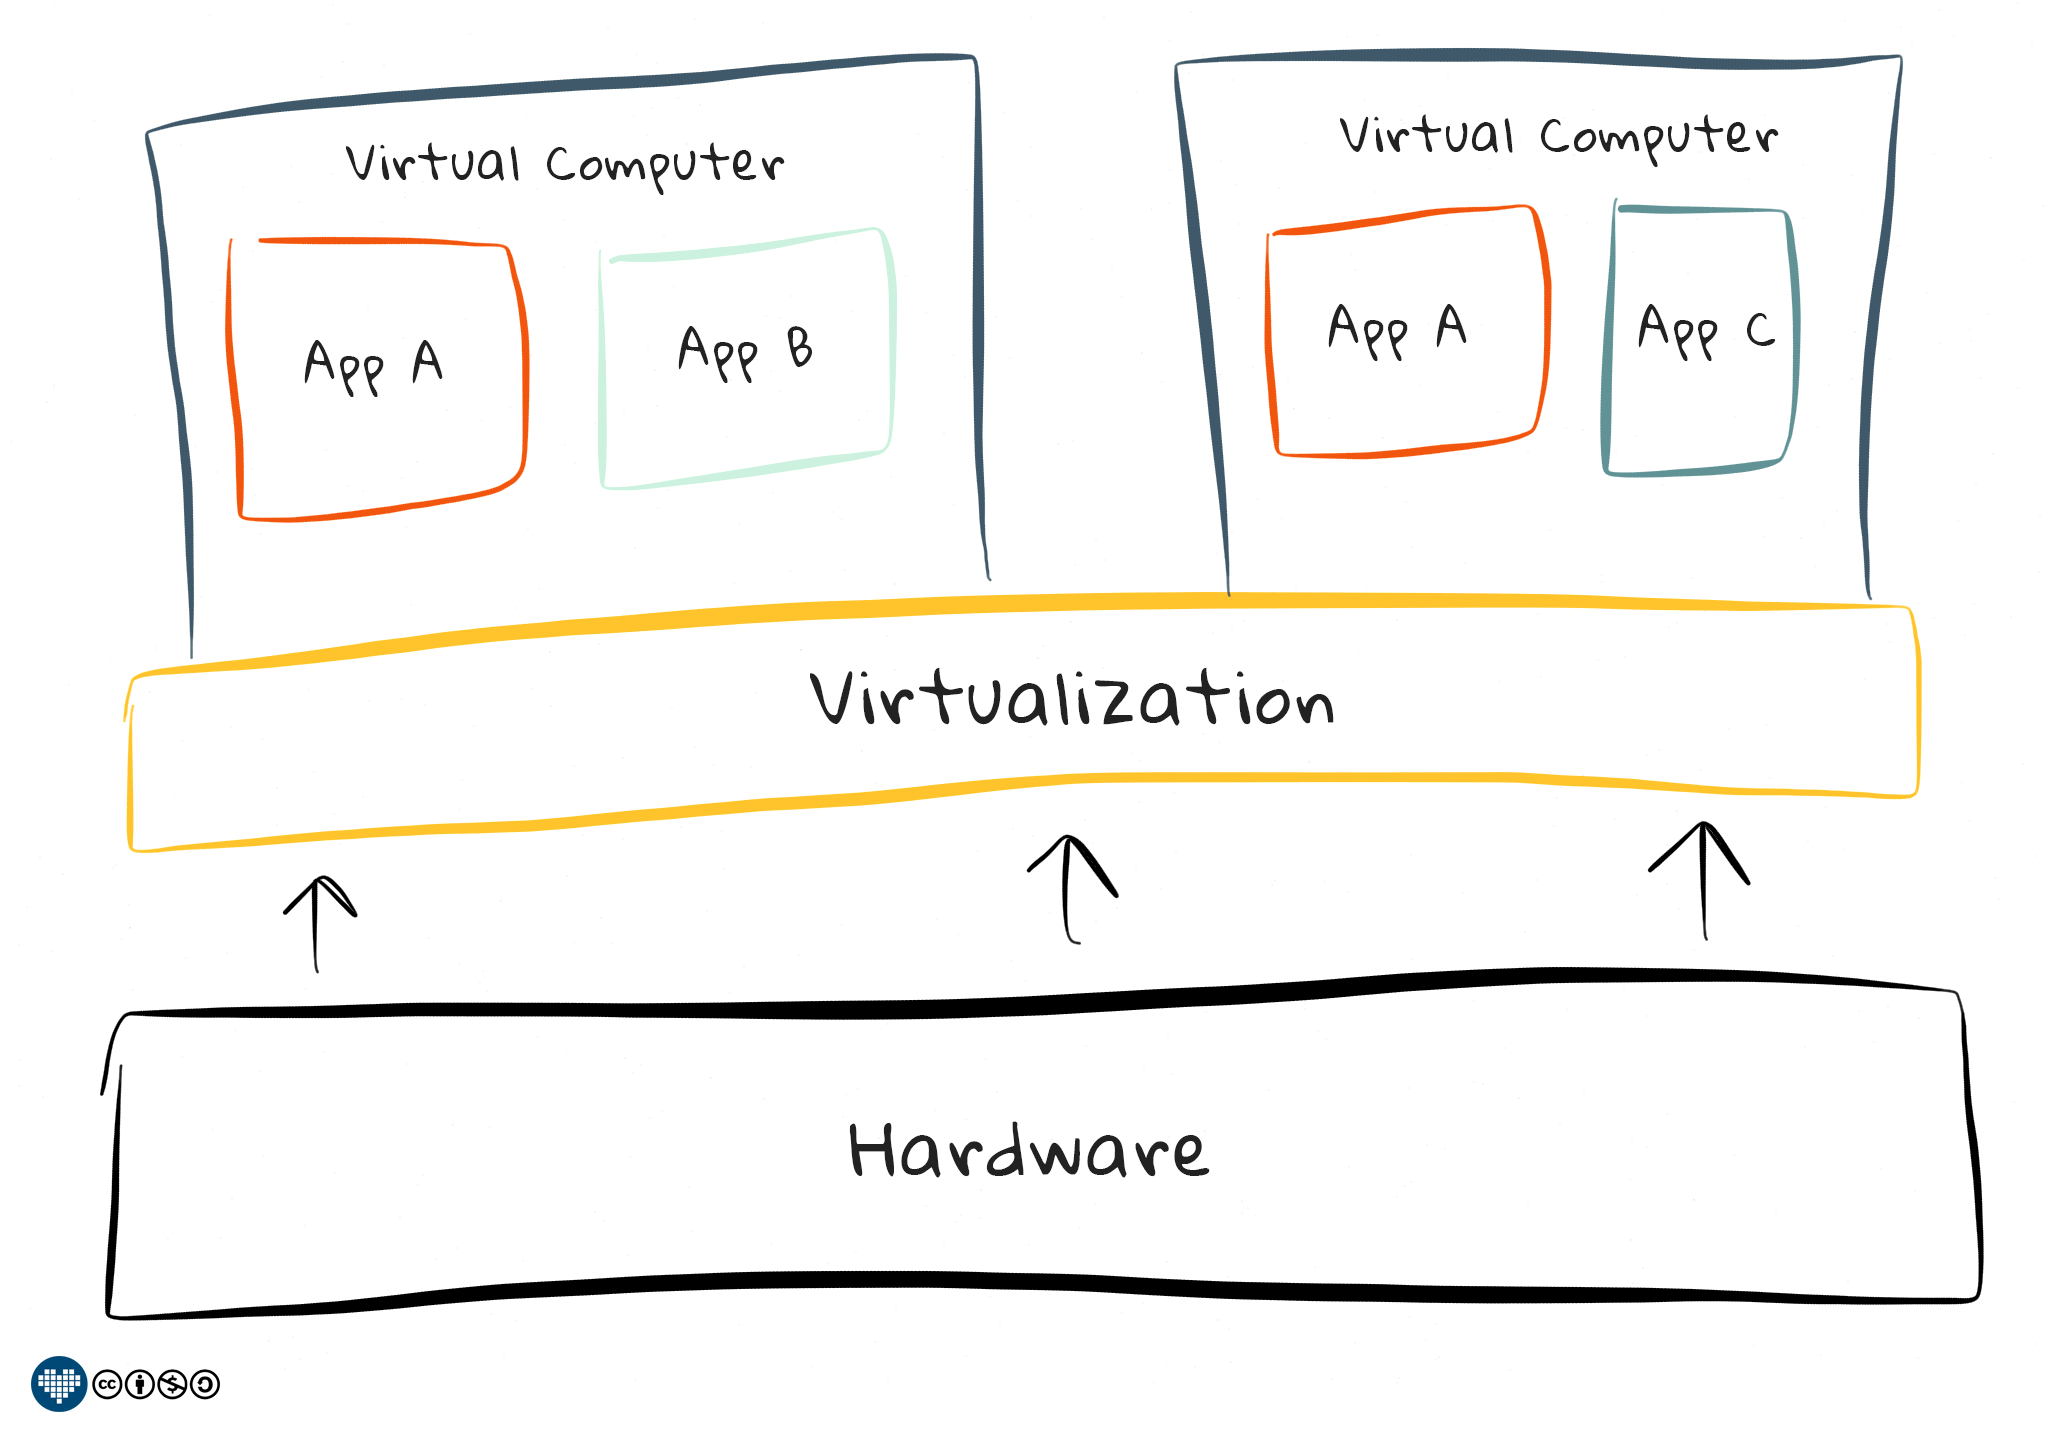 Virtualized System